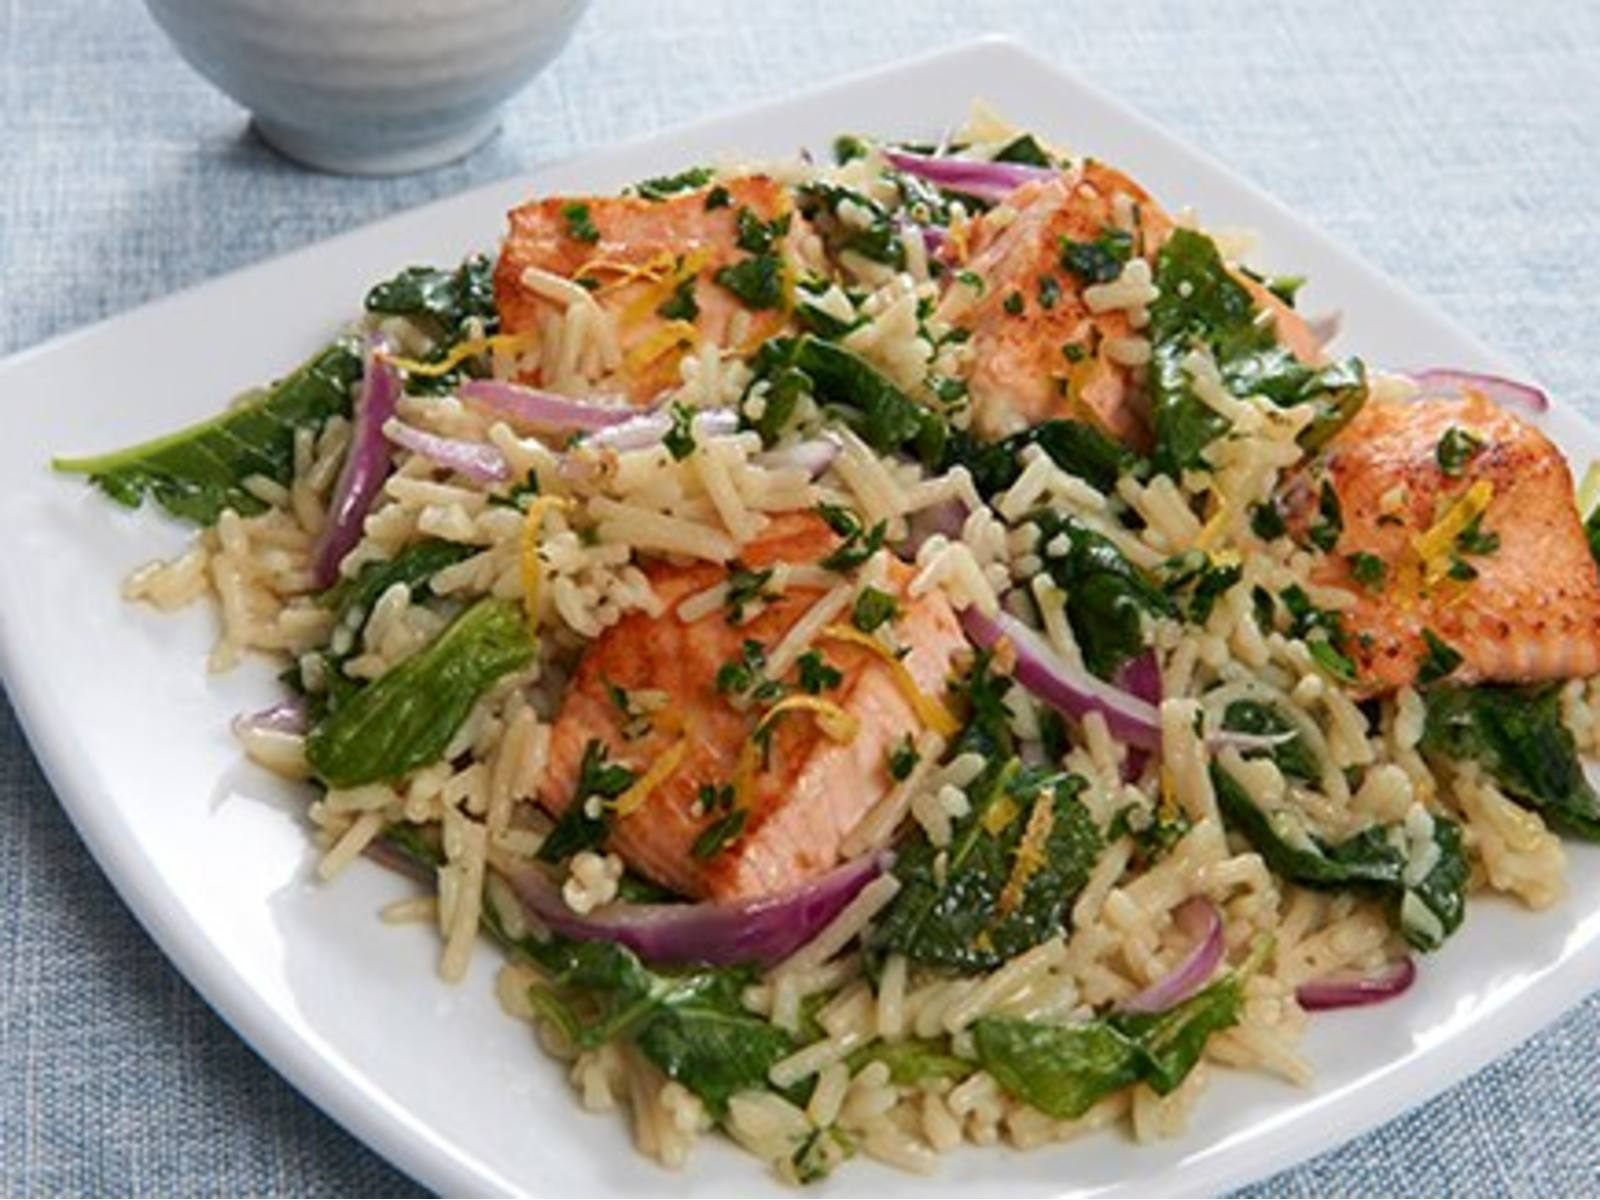 Salmon & Kale With Lemon Herb Topping